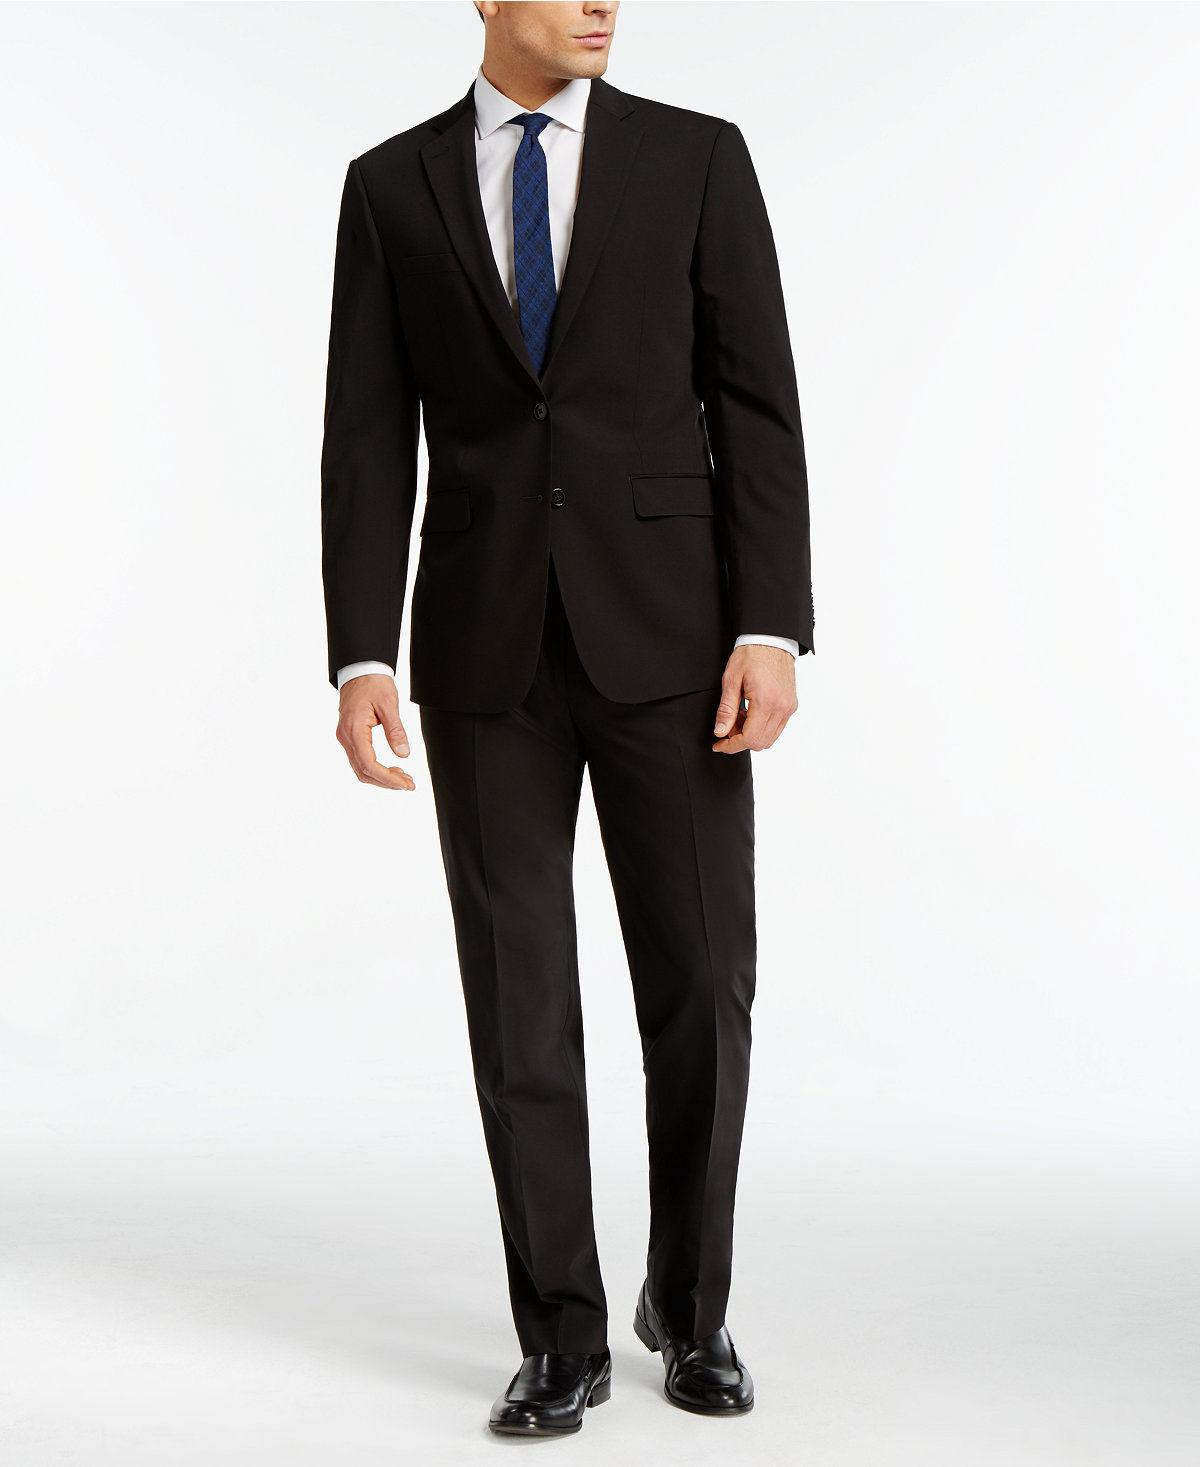 $815 KLEIN Extreme Slim X Wool Suit 2 PIECE